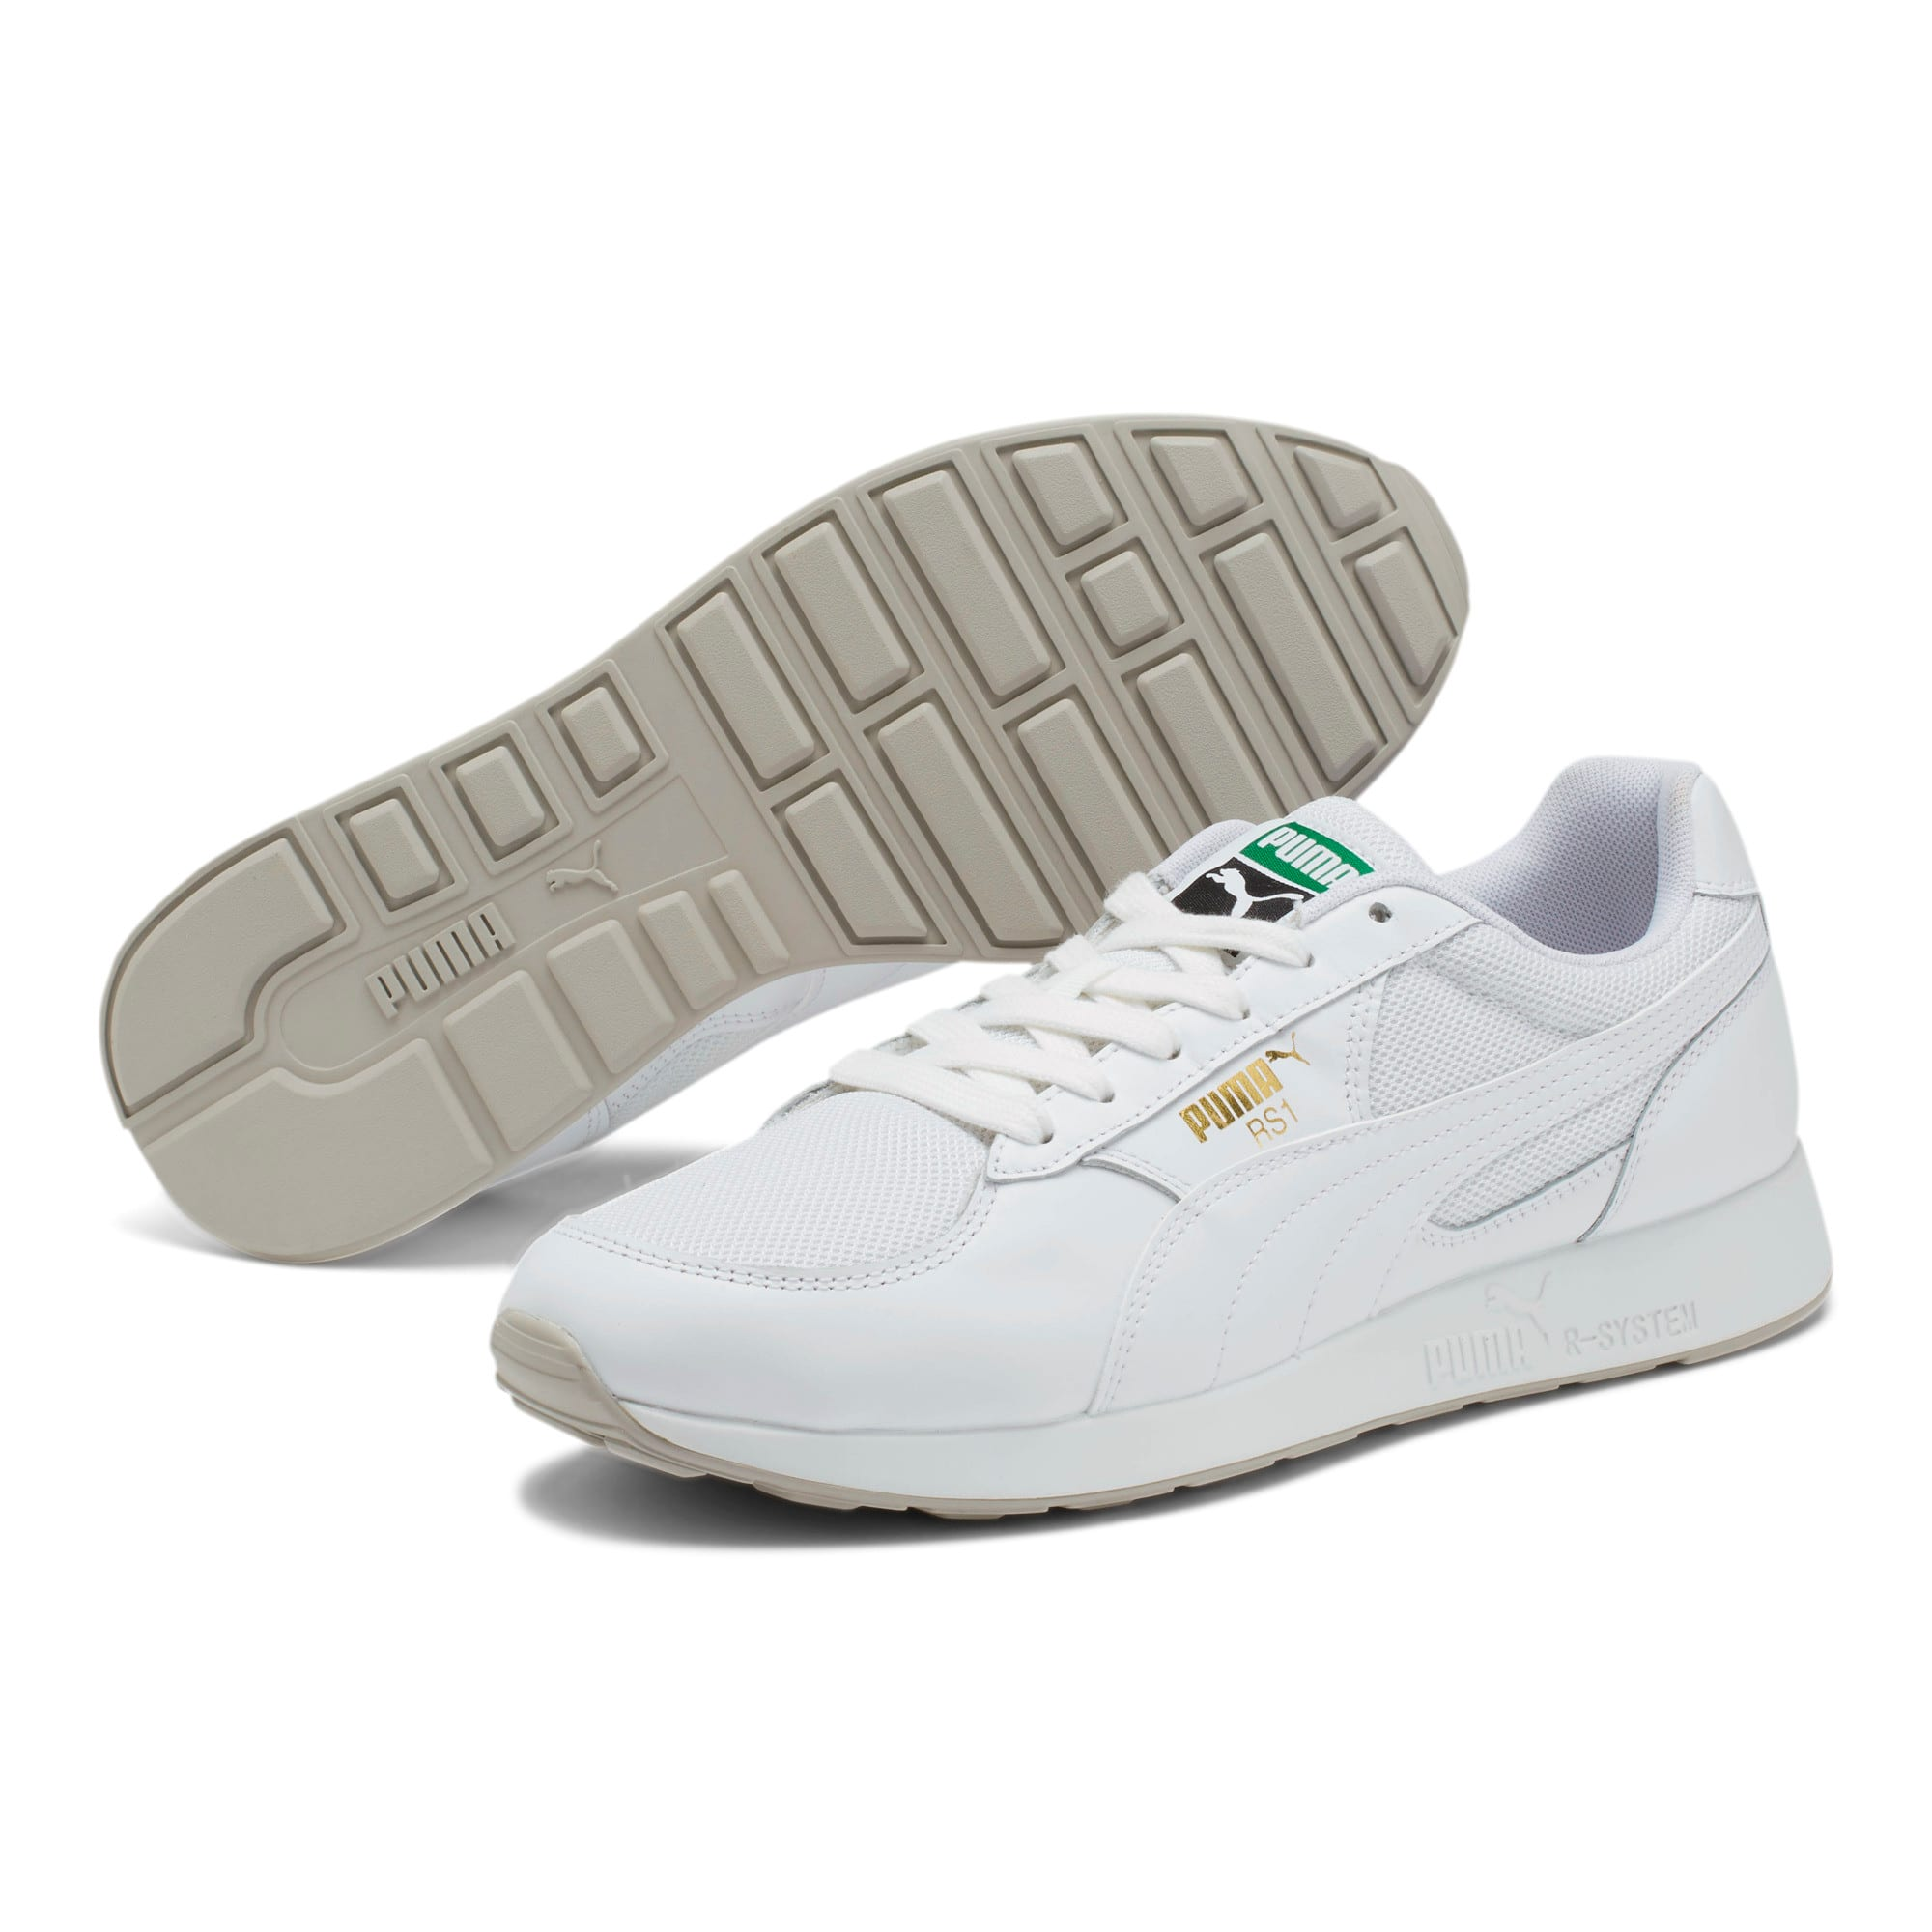 Thumbnail 2 of RS-1 OG CLONE Sneakers, Puma White-Gray Violet, medium